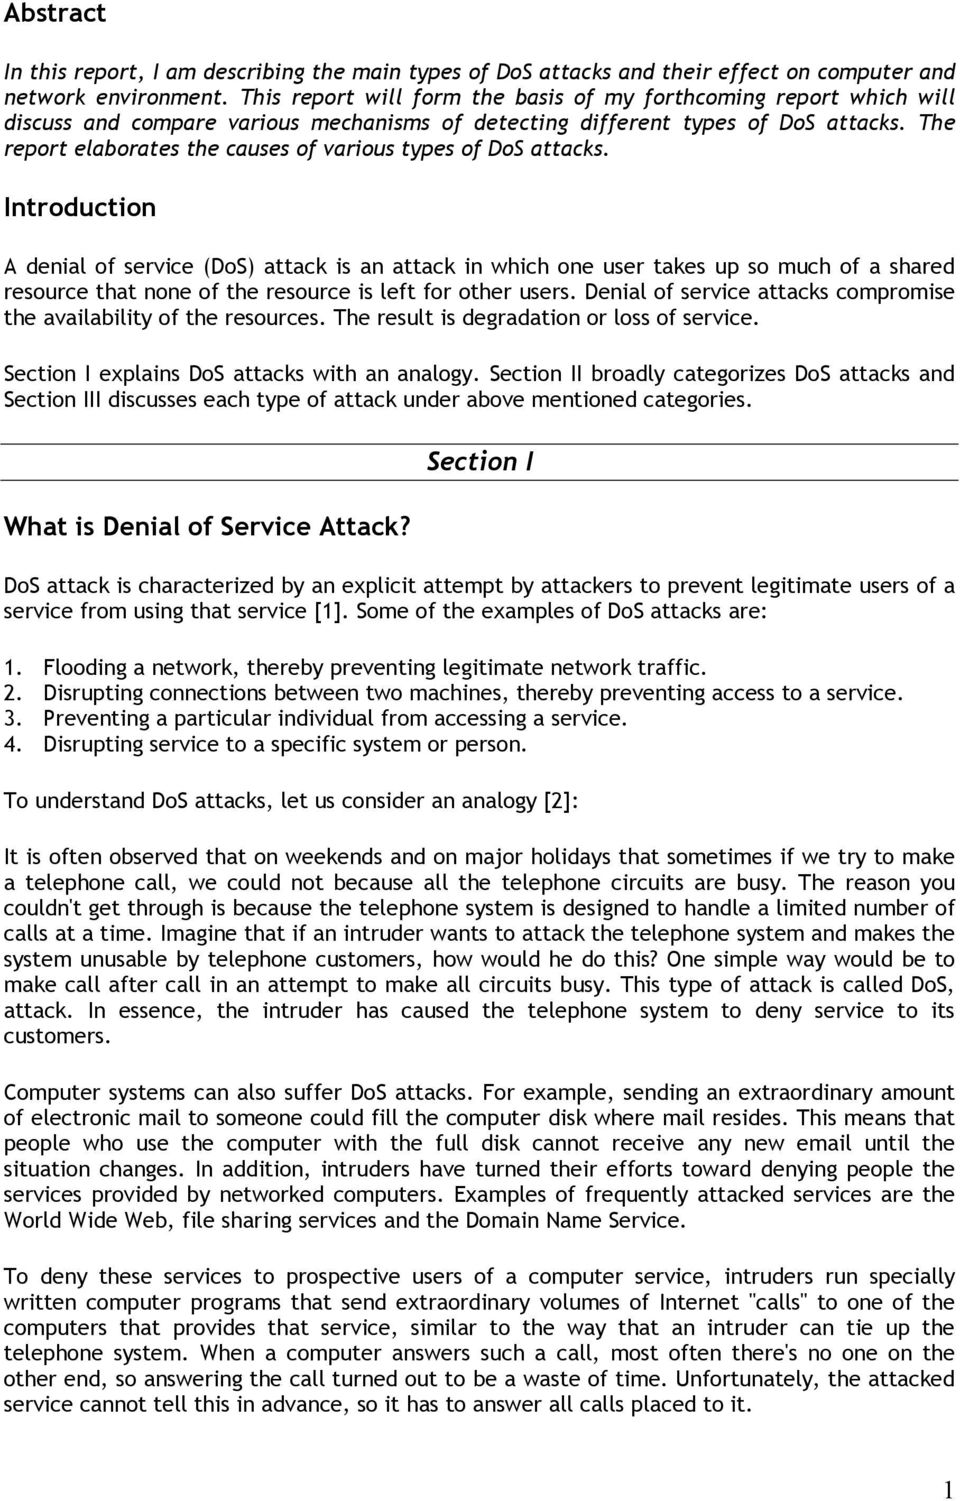 The report elaborates the causes of various types of DoS attacks.